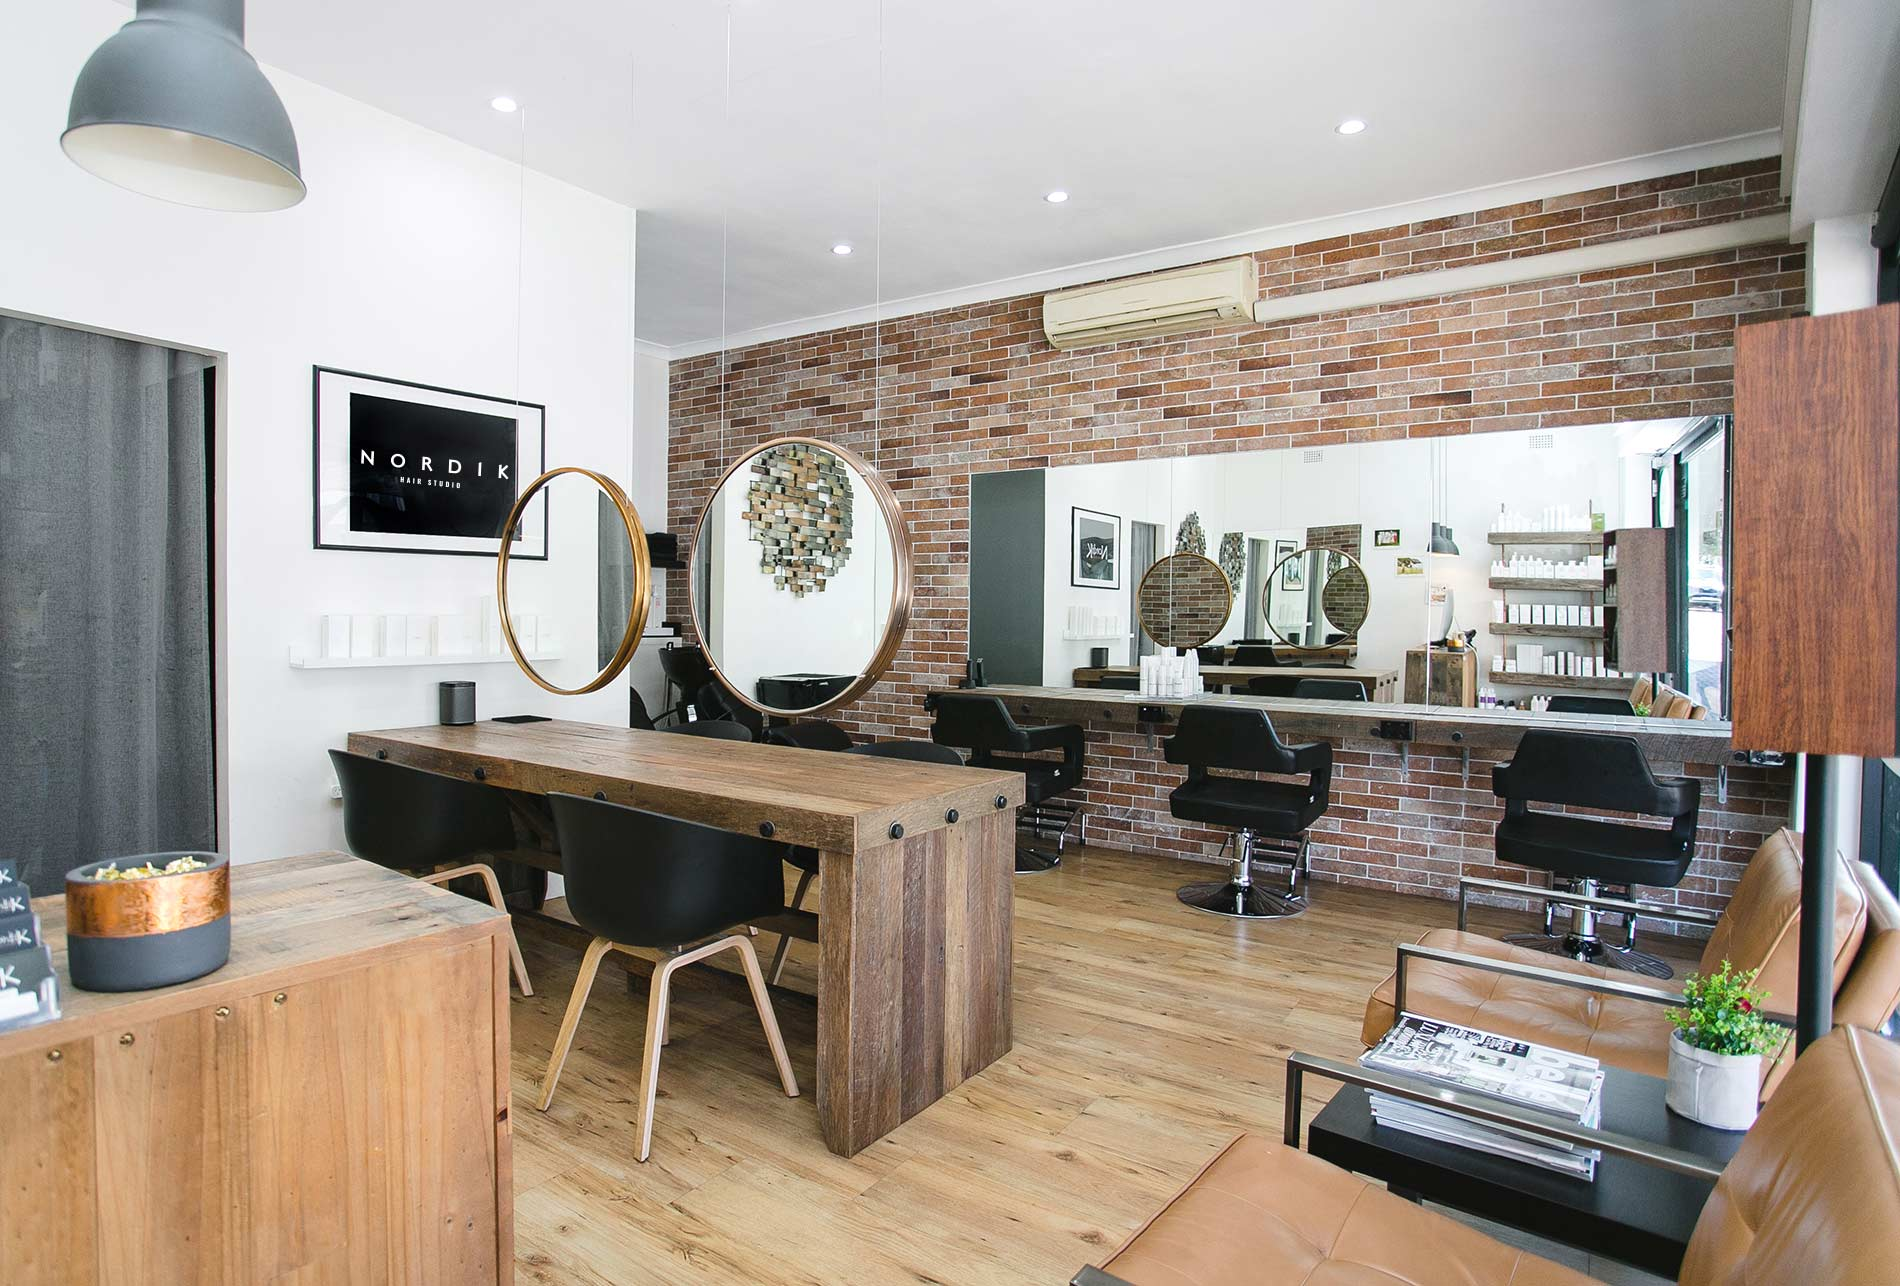 Beautiful salon interior - Nordik hair Studio Rose Bay